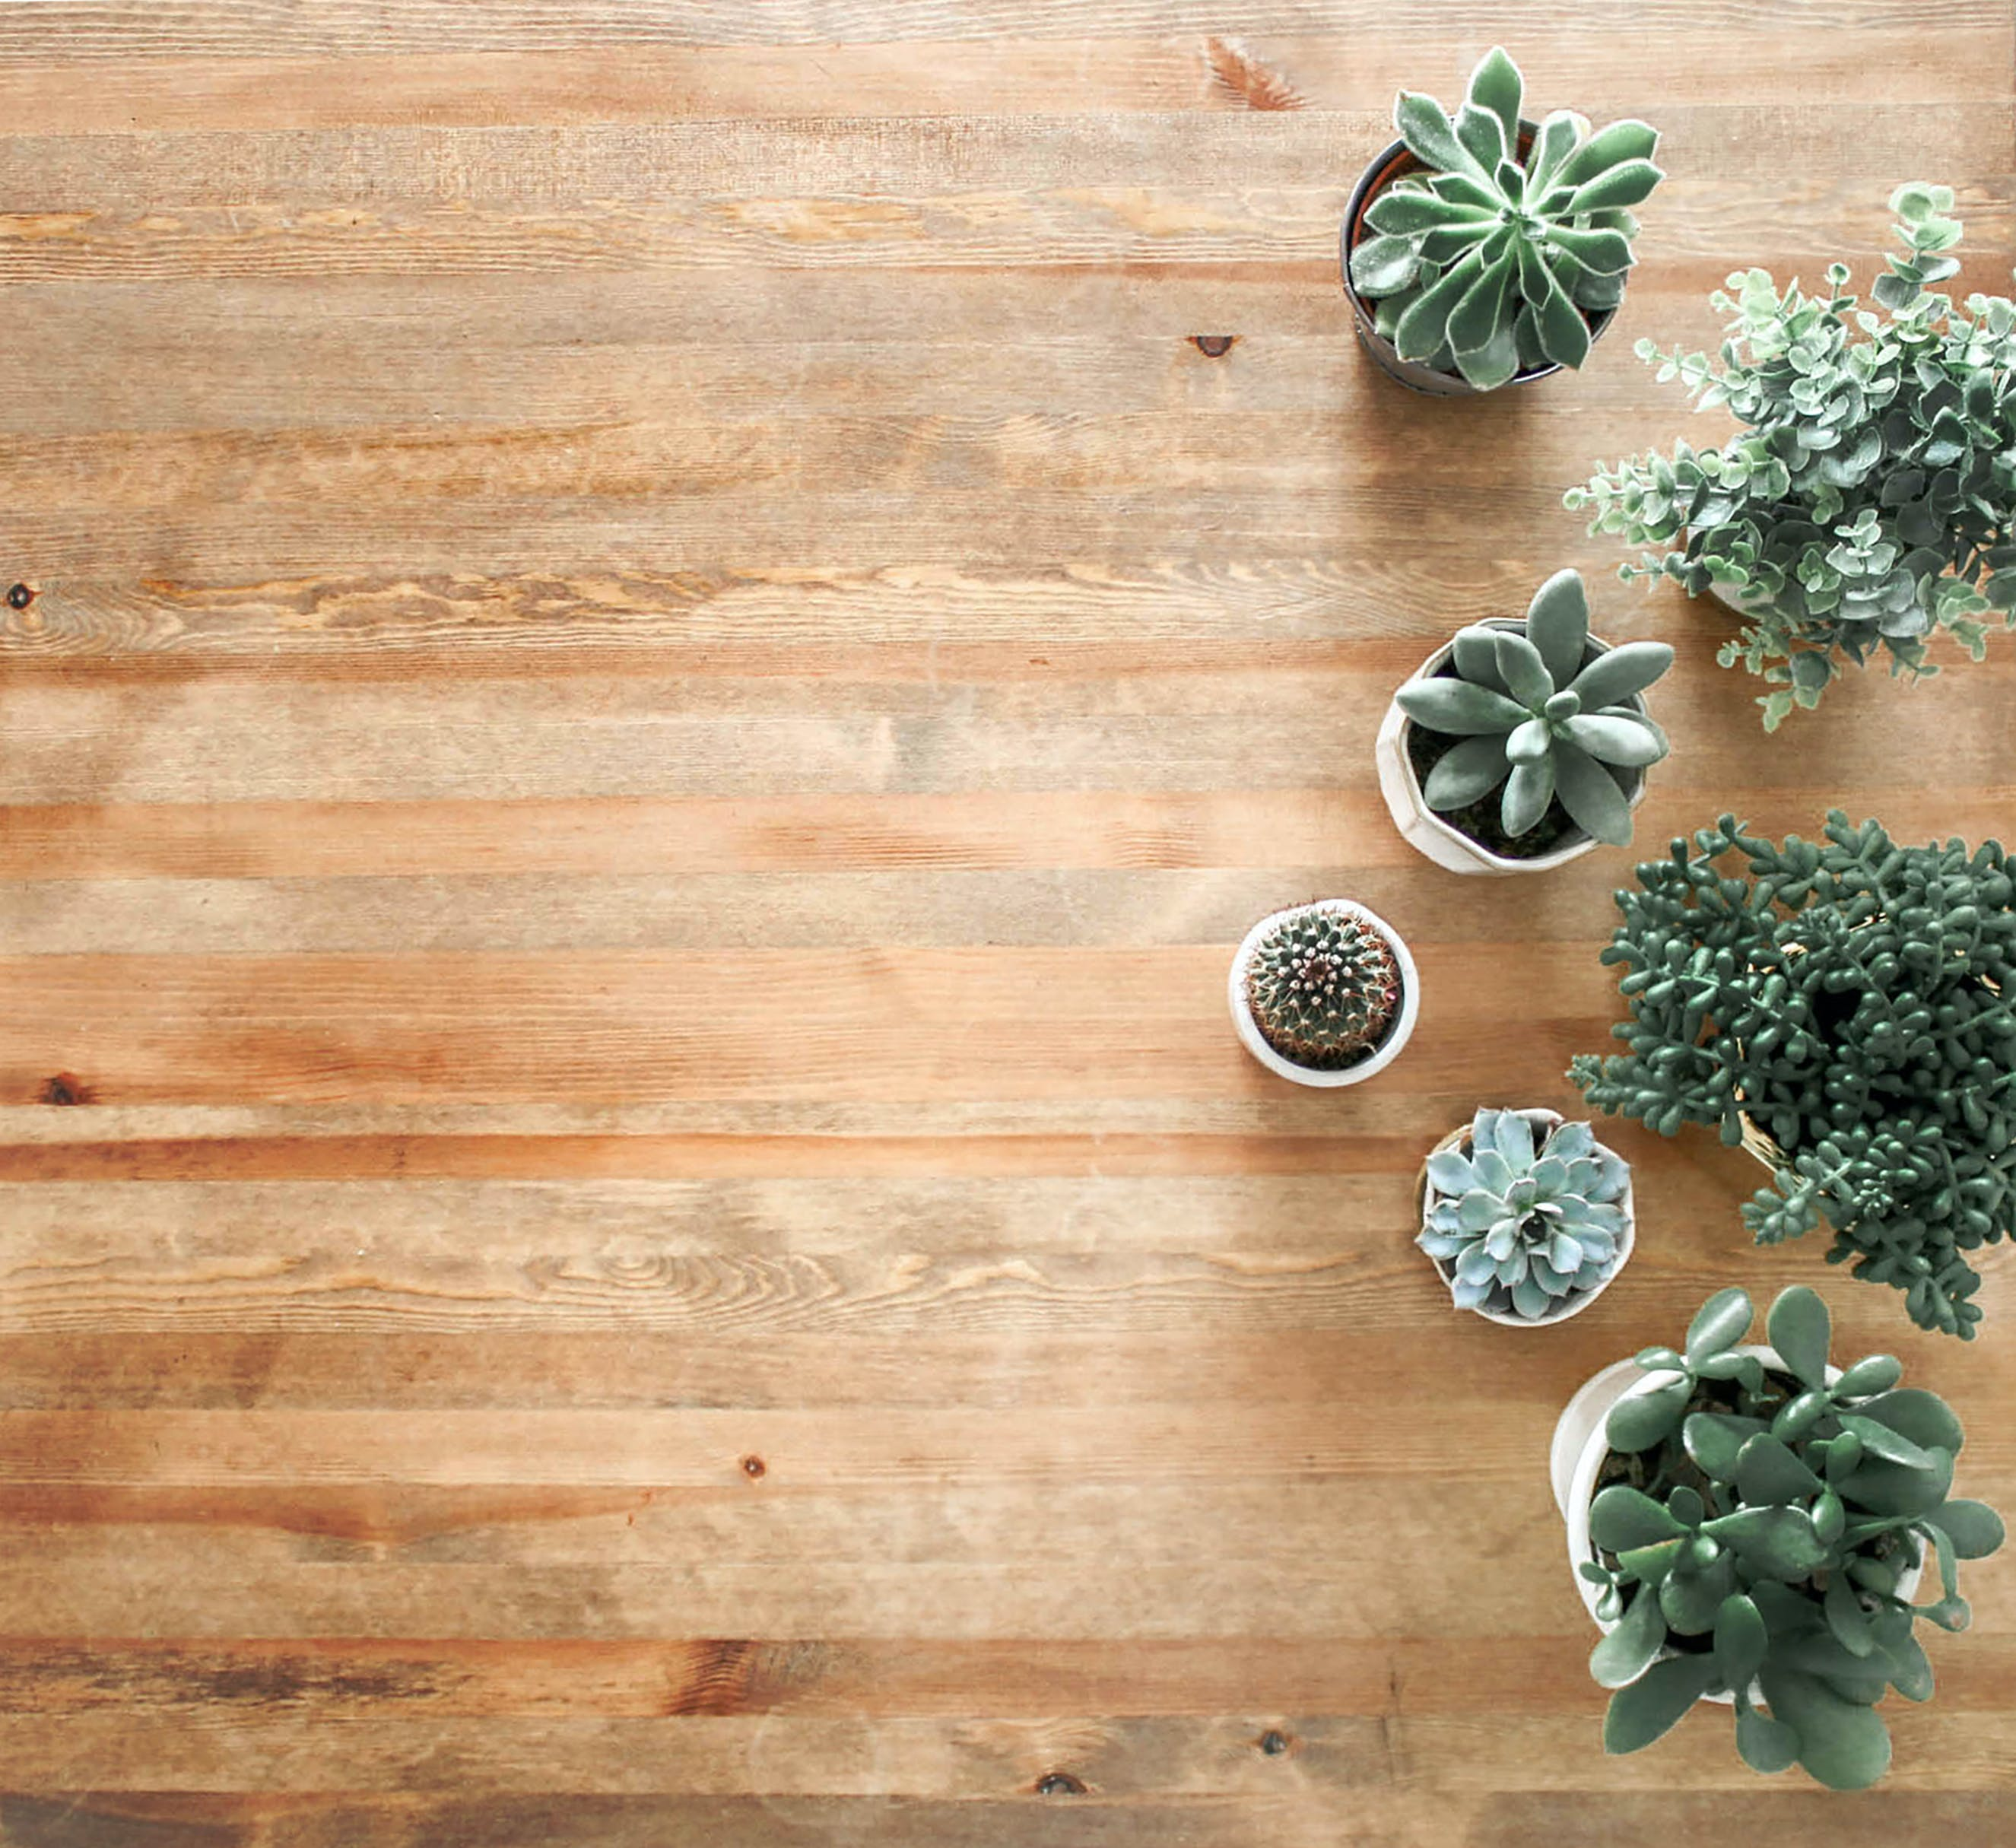 Above Ground Photo of Succulent Plants on Brown Wooden Board